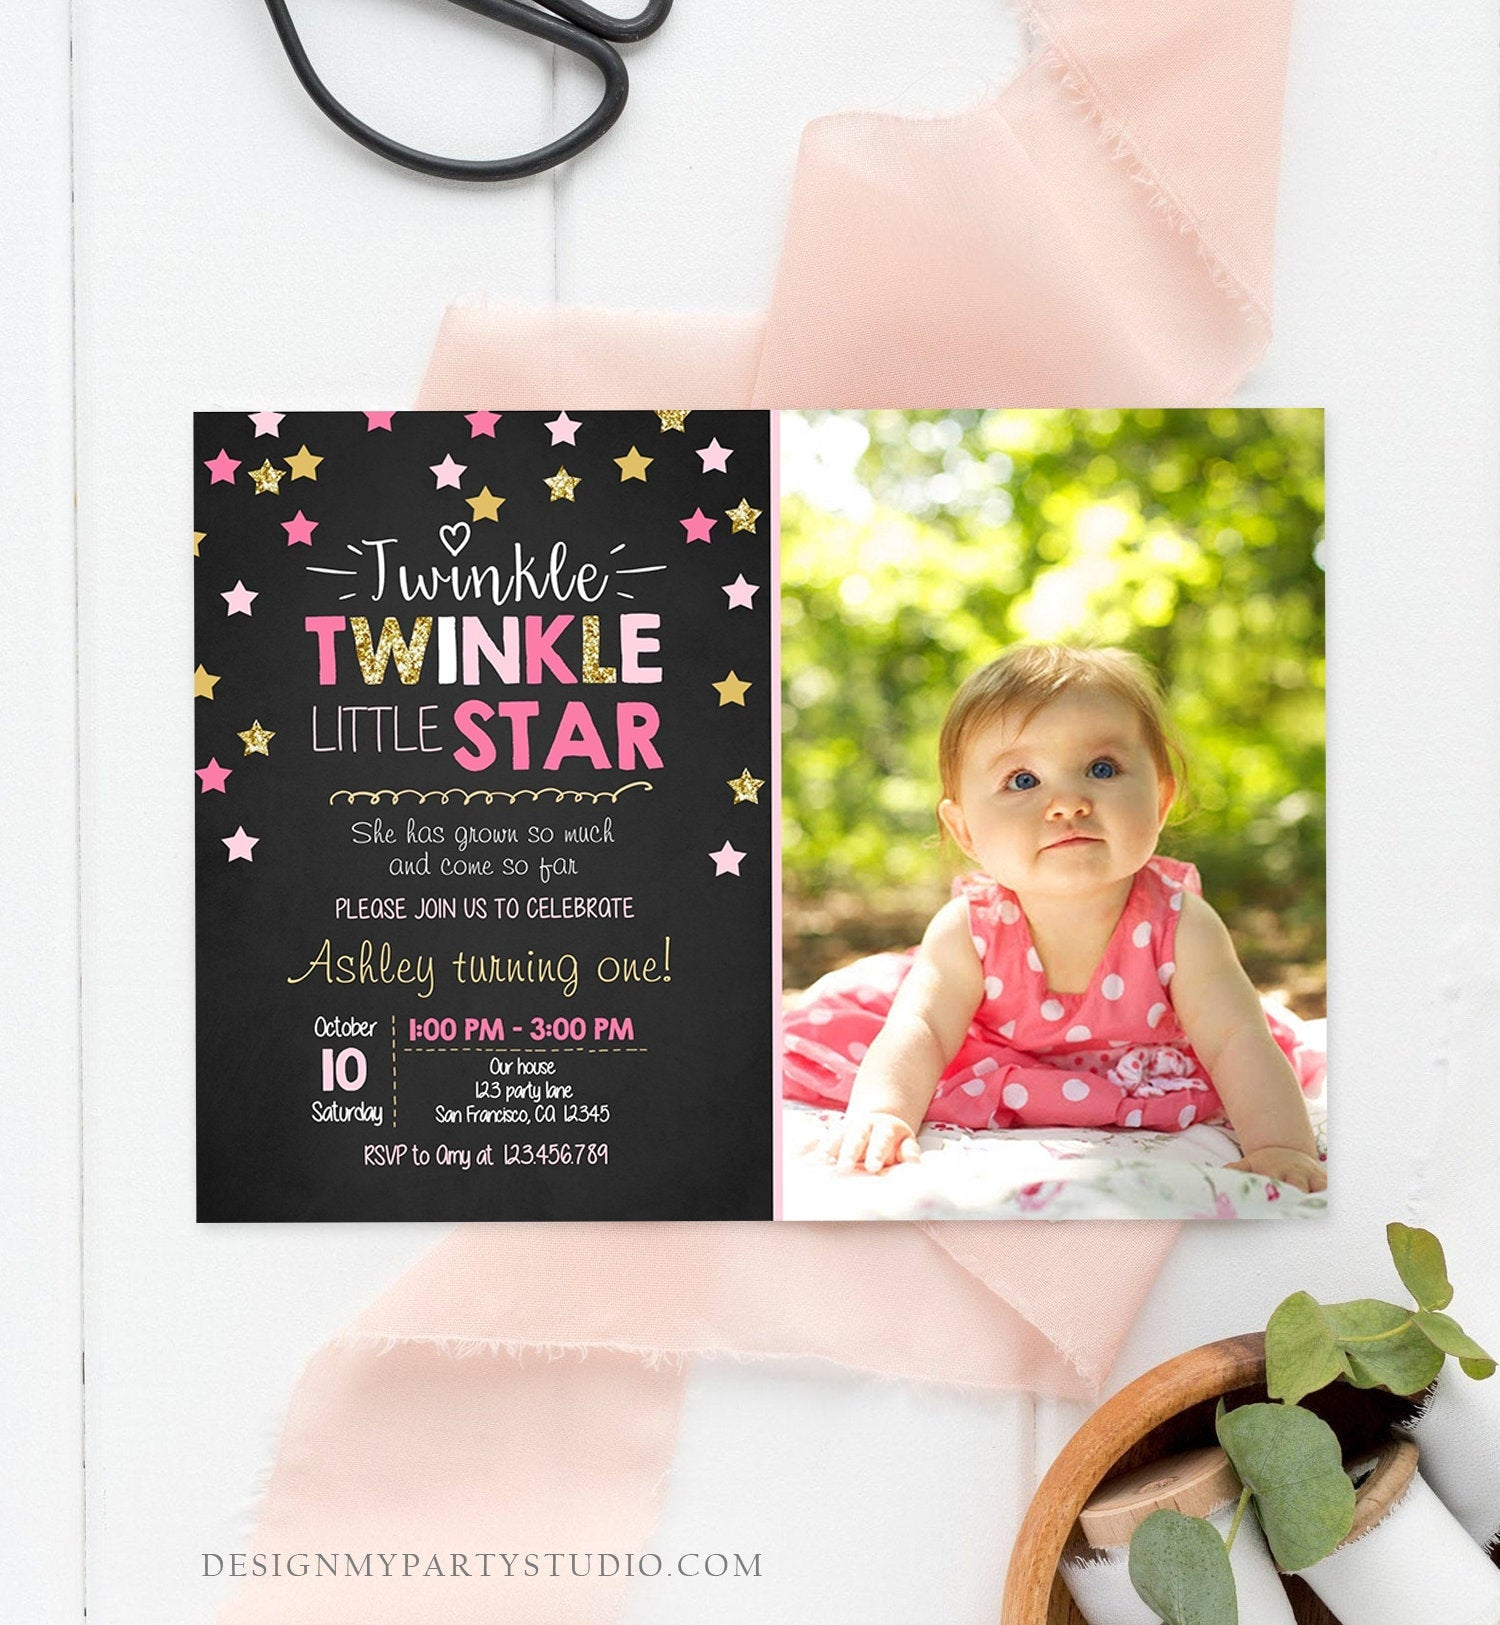 Editable Twinkle Little Star Birthday Invitation Pink Gold Photo Girl First Birthday Chalk Stars Download Corjl Template Printable 0028